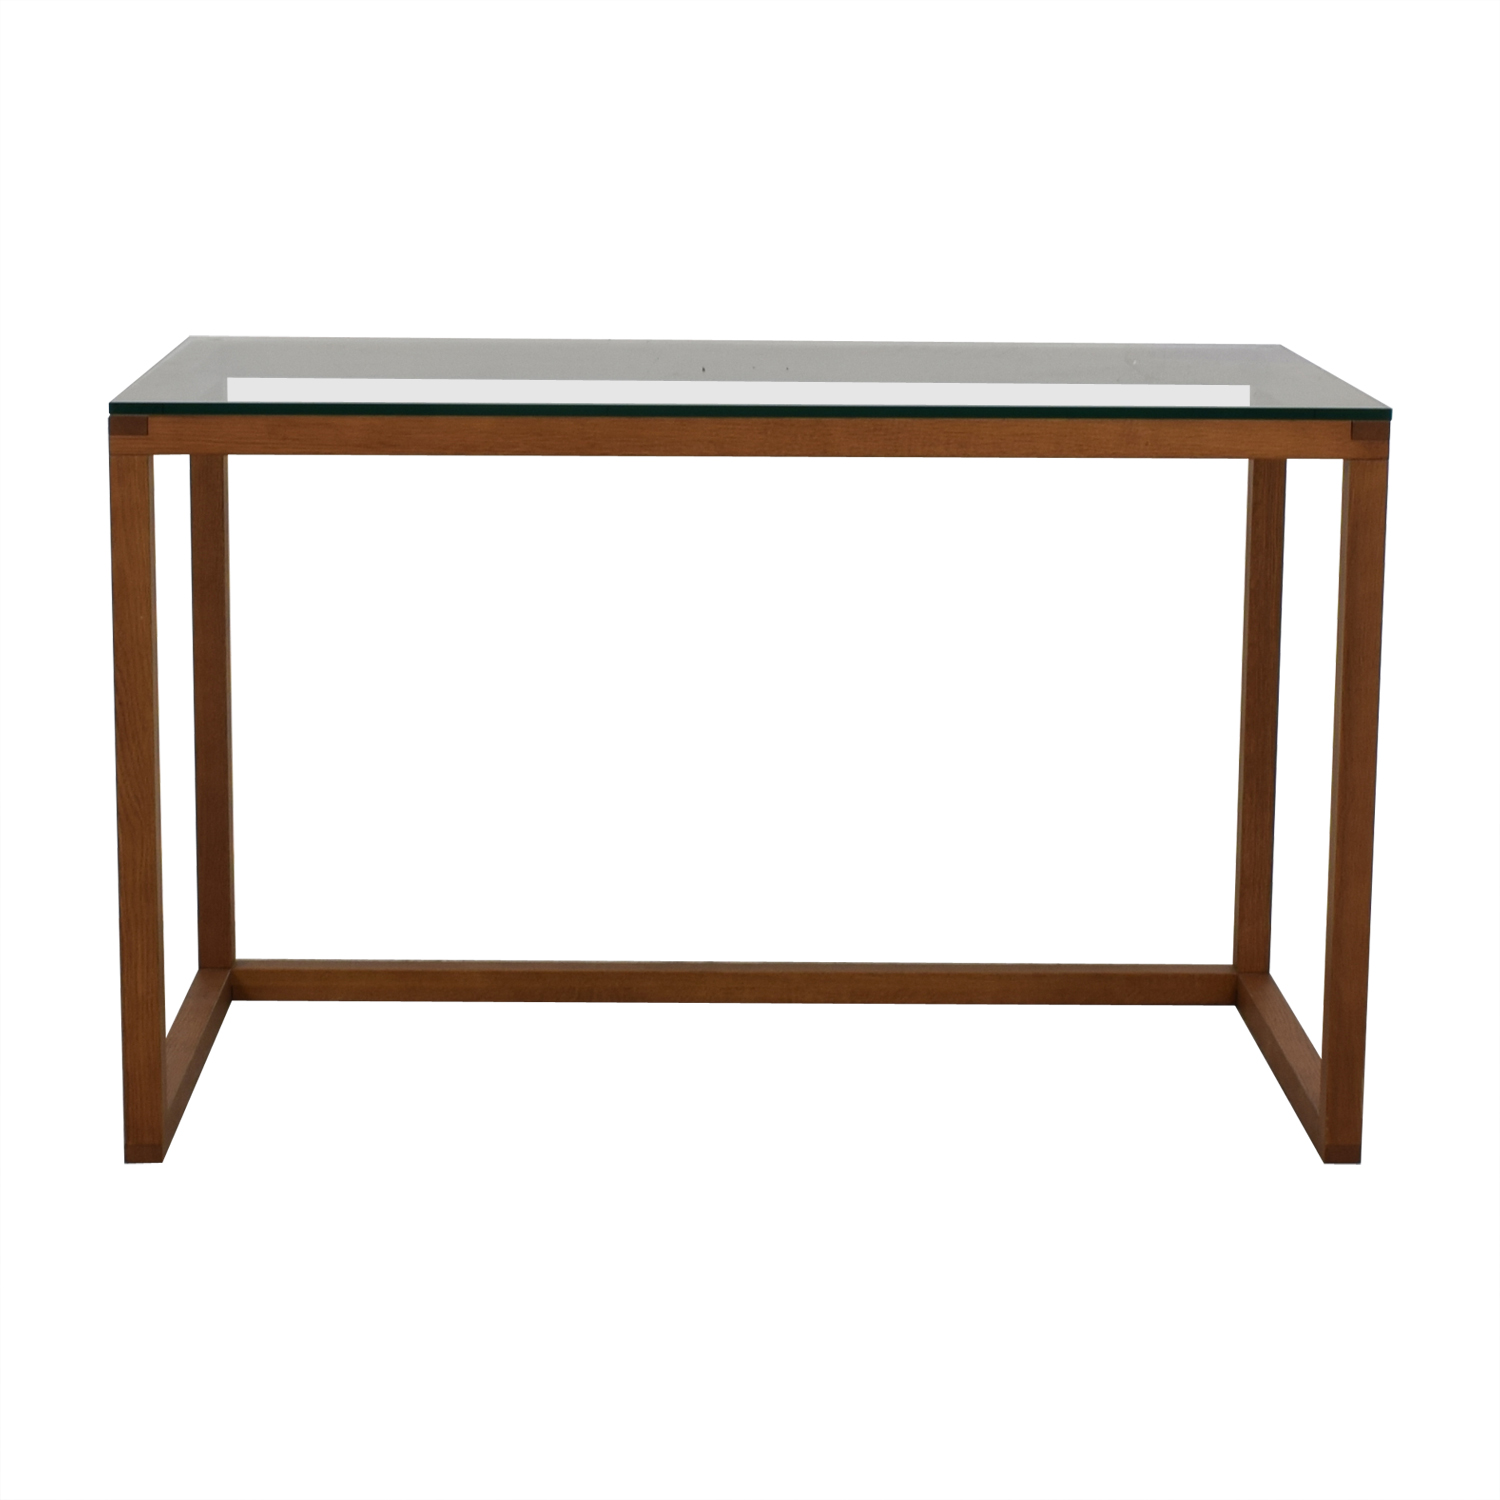 Crate & Barrel Crate & Barrel Glass and Wood  Desk second hand